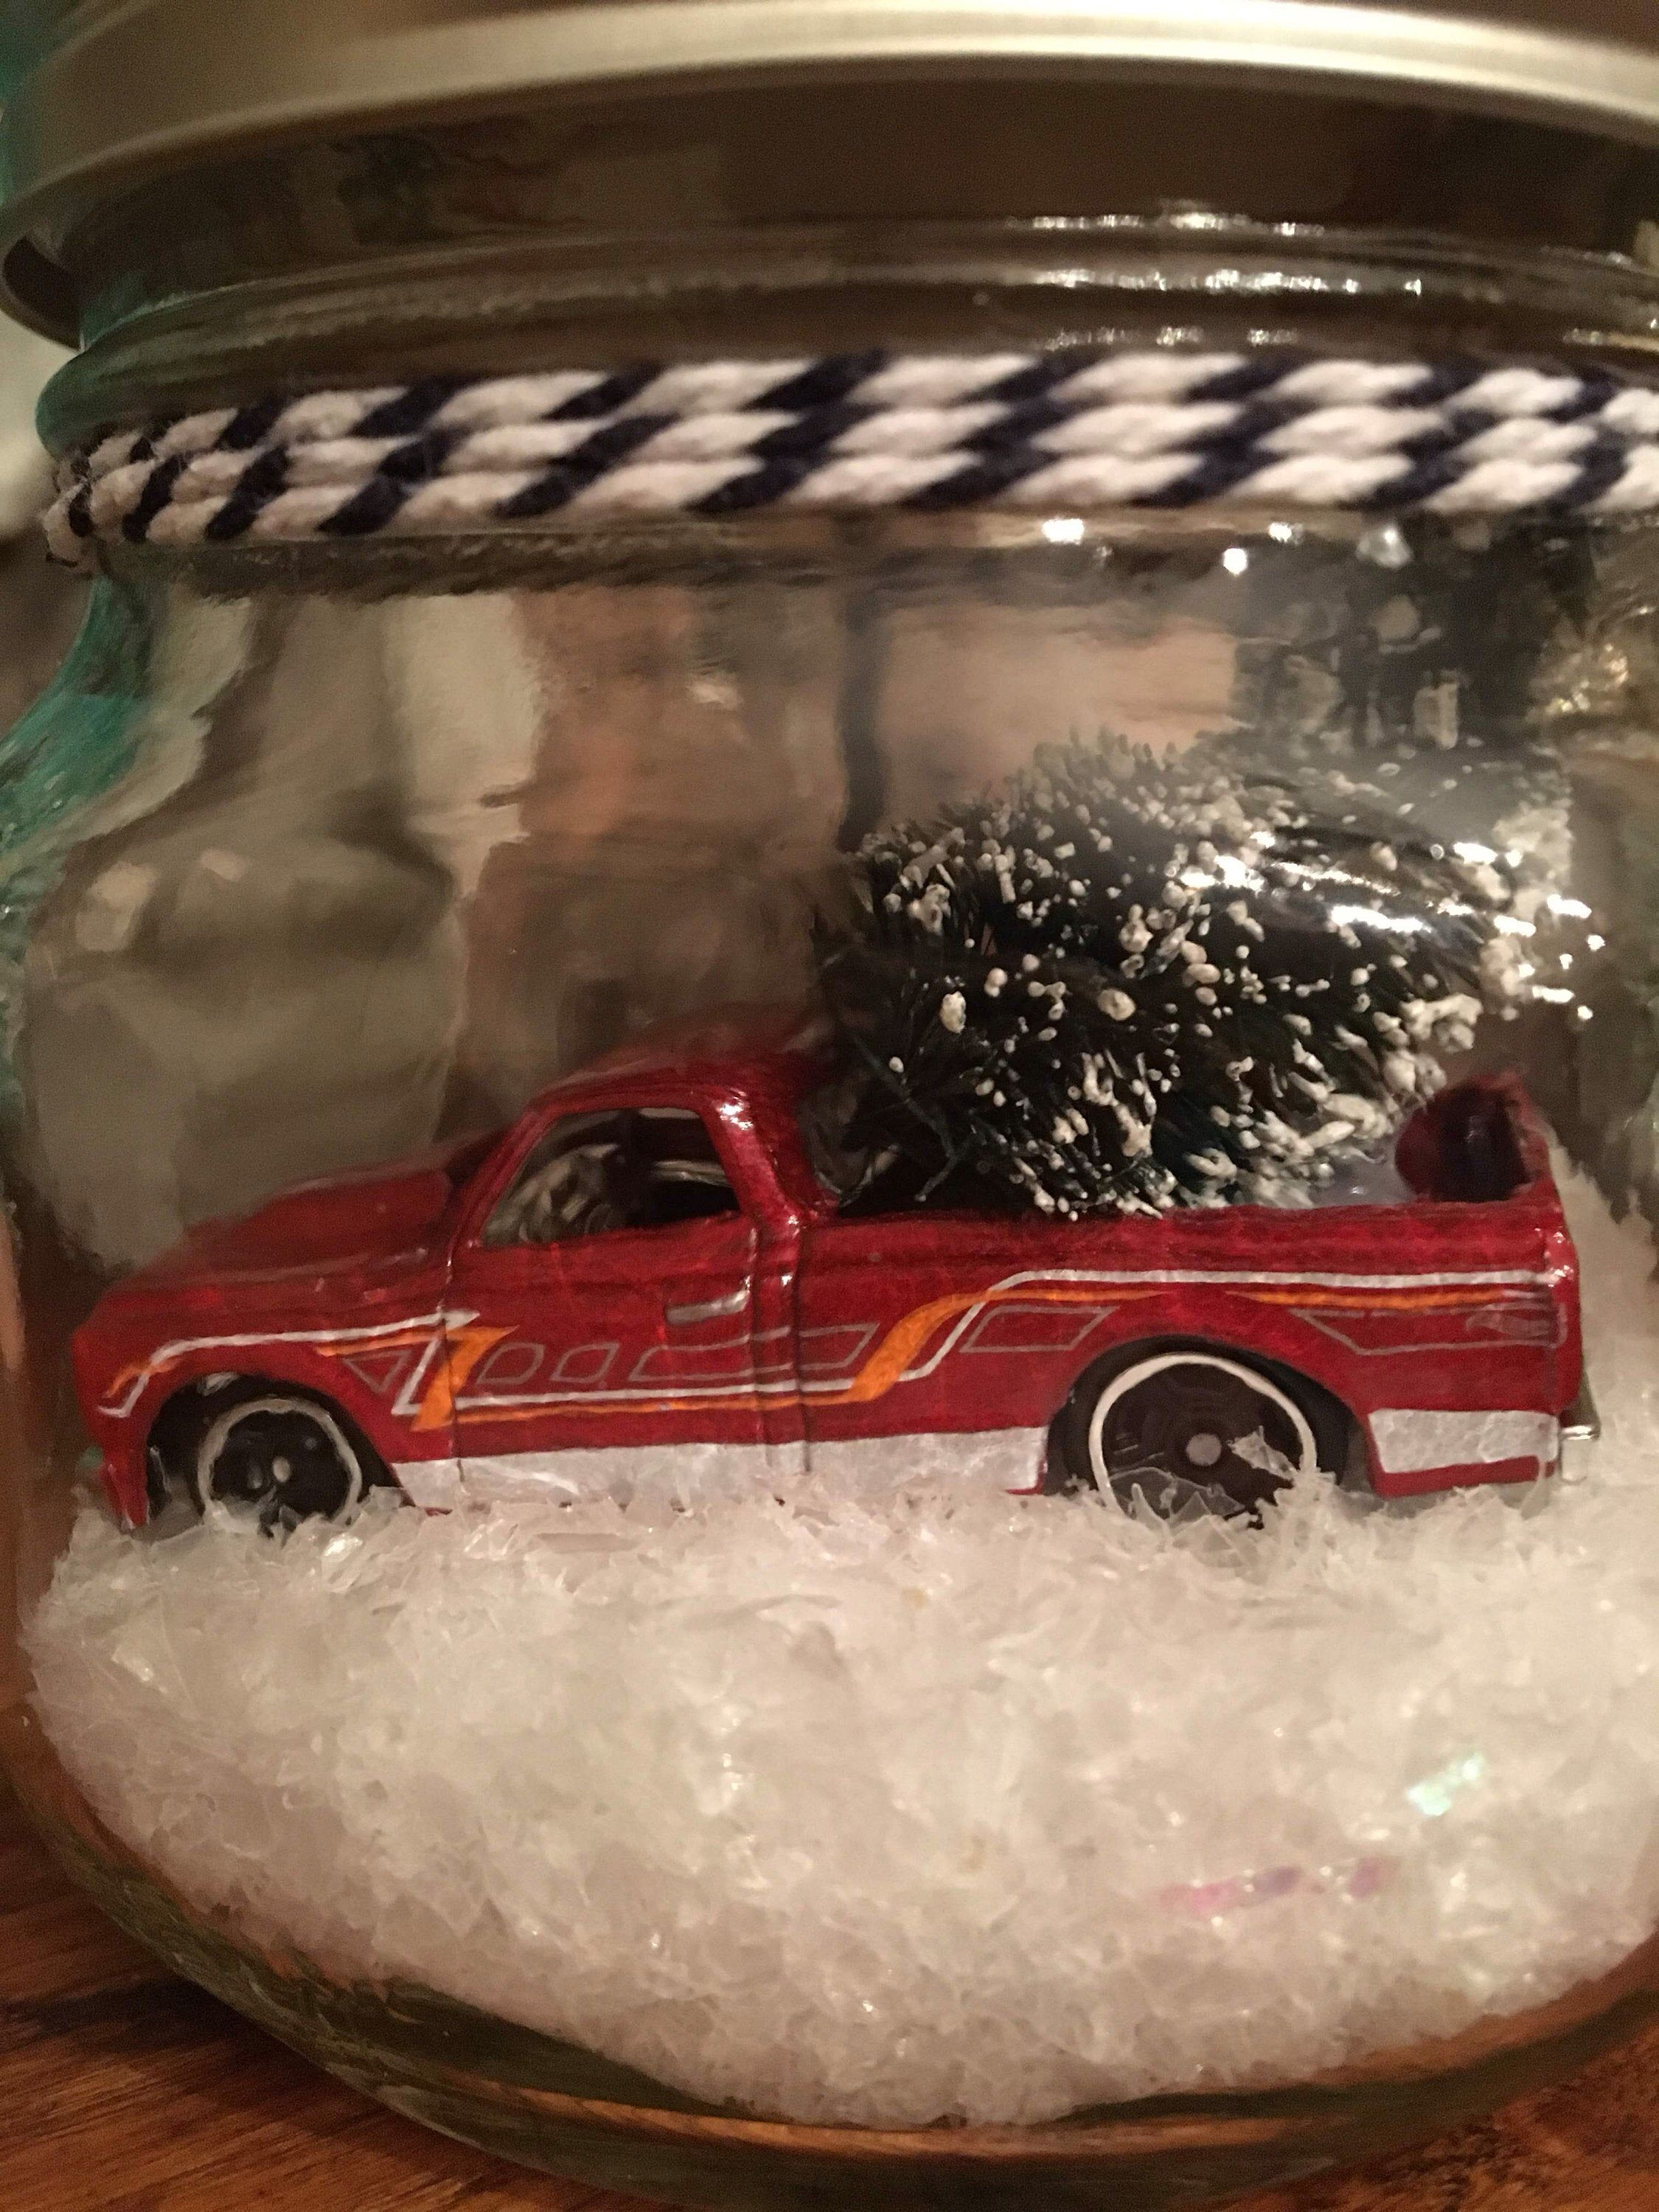 Mason Jar Holiday, 1967 Chevy C10 in a Jar, Classic